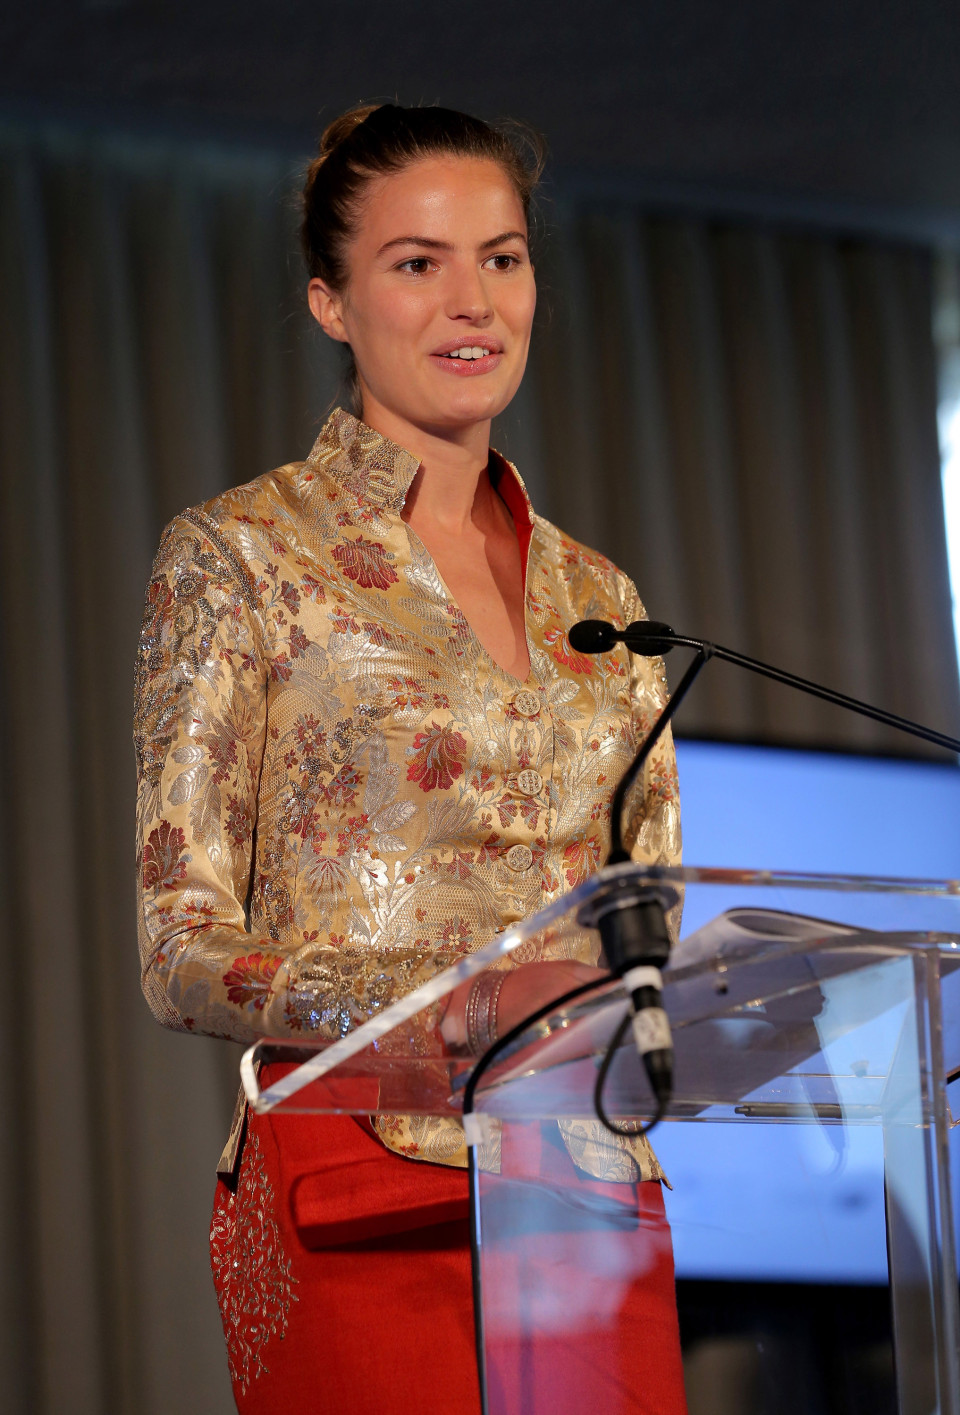 Cameron Russell's movement #myjobshouldnotincludeabuse inspired thousands of models to come forward with stories of abuse and has led to the creation of the Model Mafia.